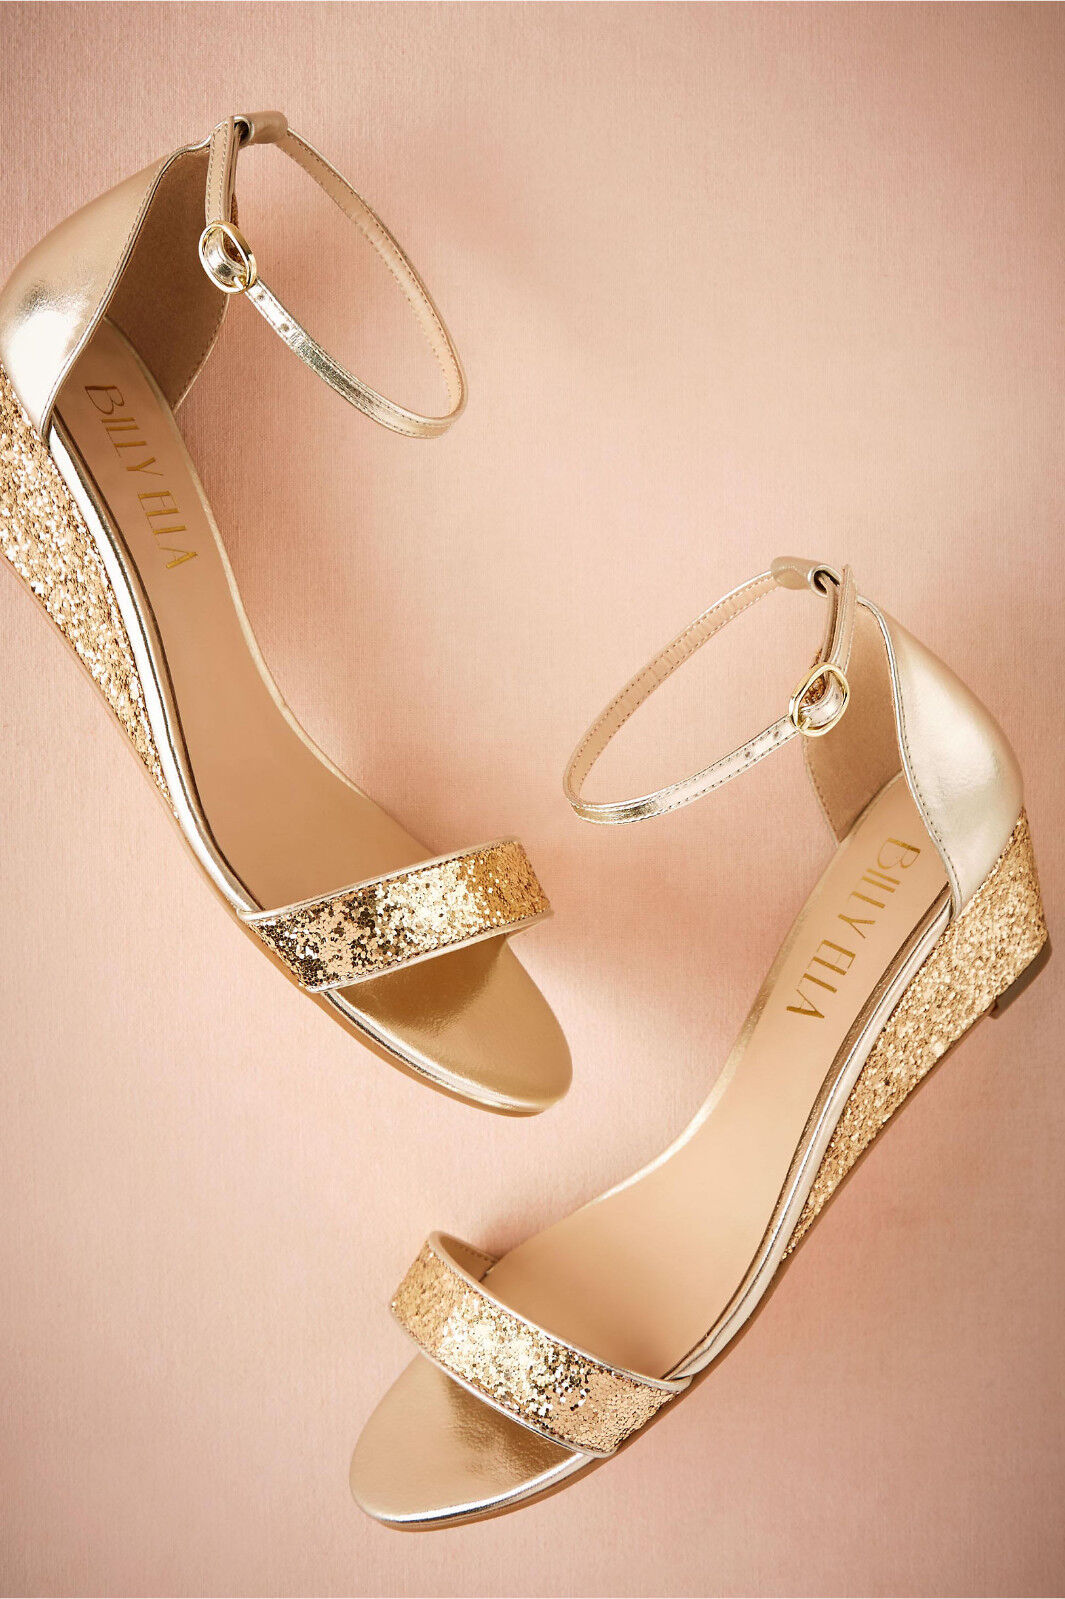 vendita online risparmia il 70% BHLDN 10 CRISTAL oro GLITTER WEDGE WEDGE WEDGE BRIDAL BILLY ELLA EVENING SOLD OUT  150 EUC  nuovo sadico